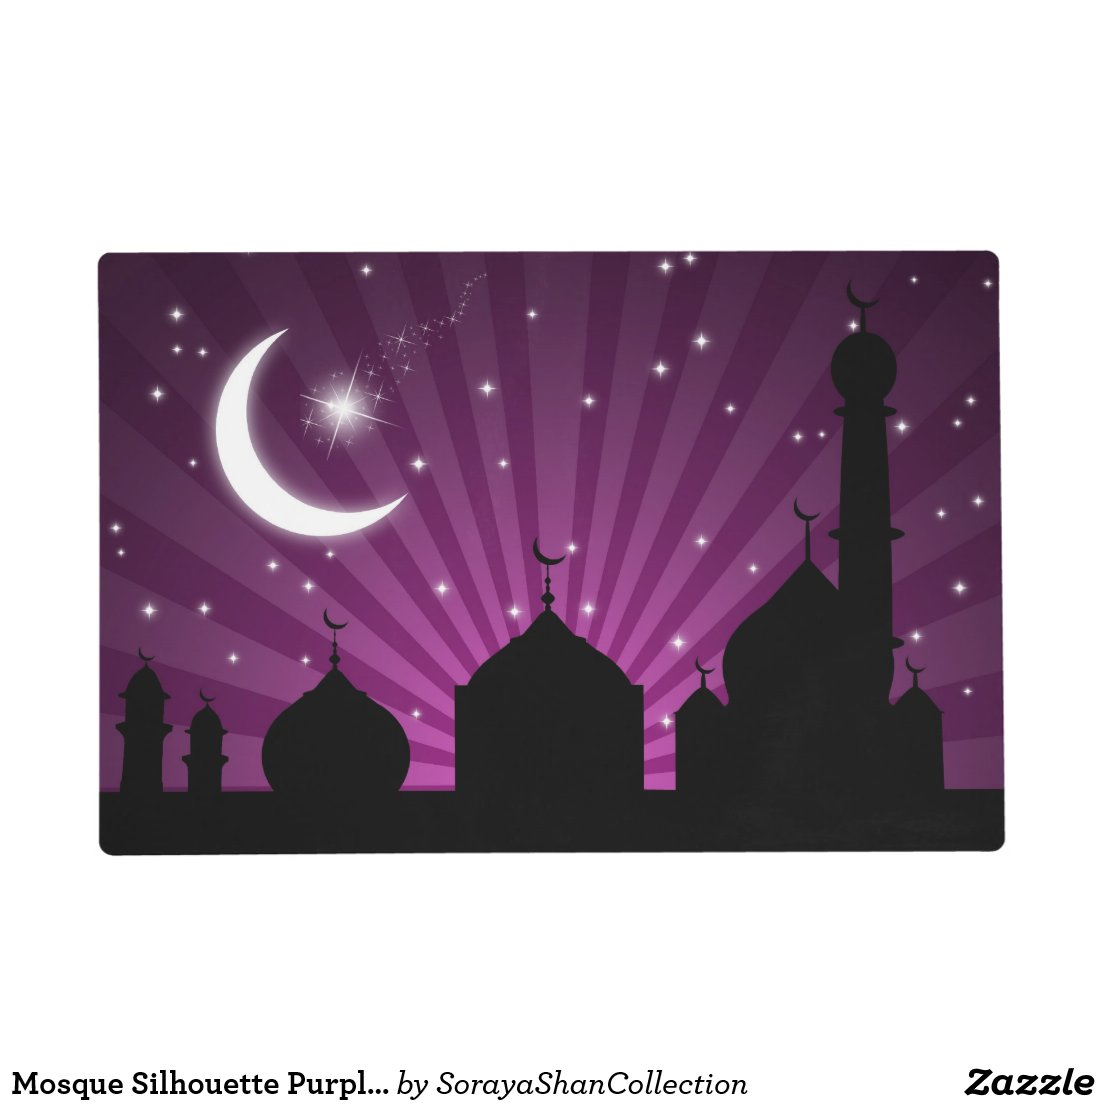 Mosque Silhouette Purple Night Laminated Placemat